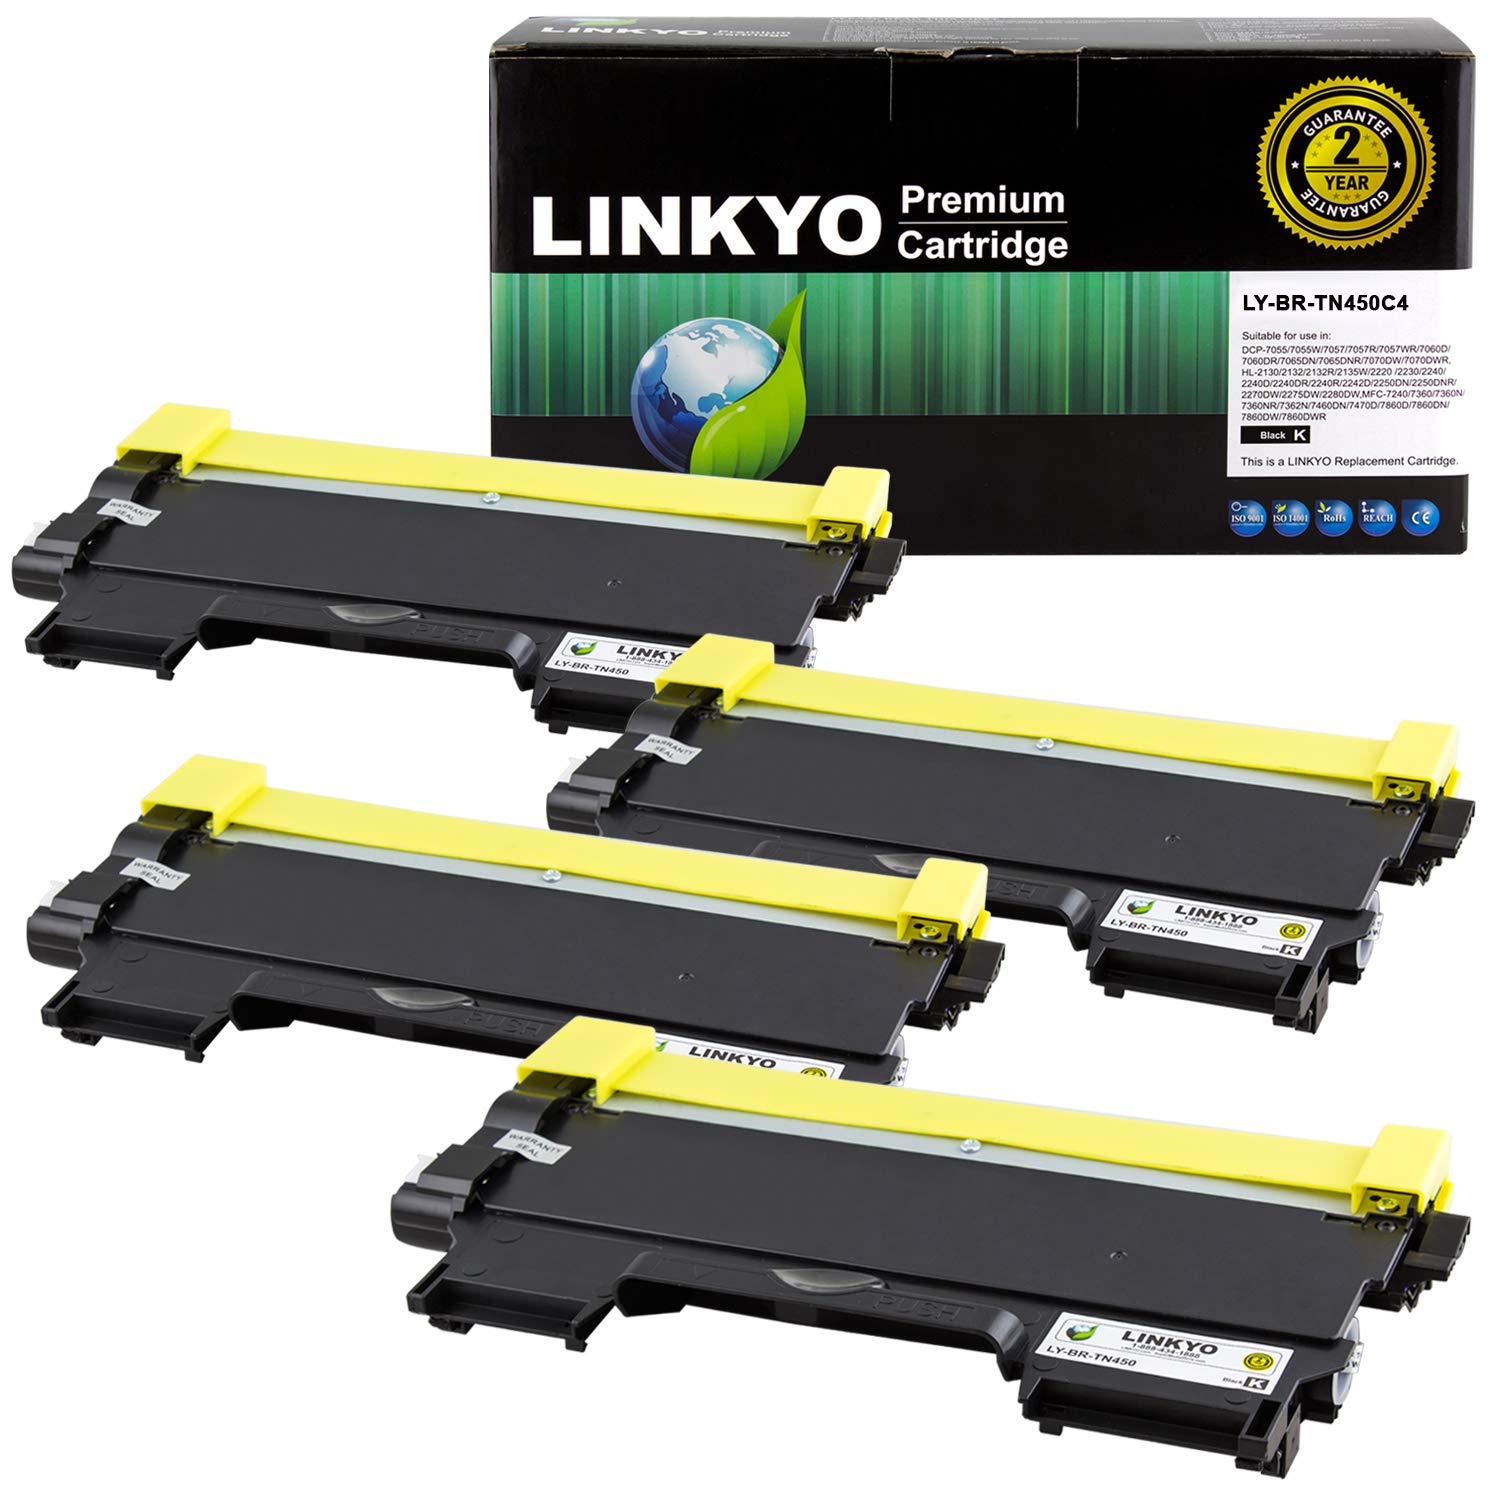 LINKYO Compatible Toner Cartridge Replacement for Brother TN450 TN-450 TN420 (Black, High Yield, 4-Pack) by LINKYO